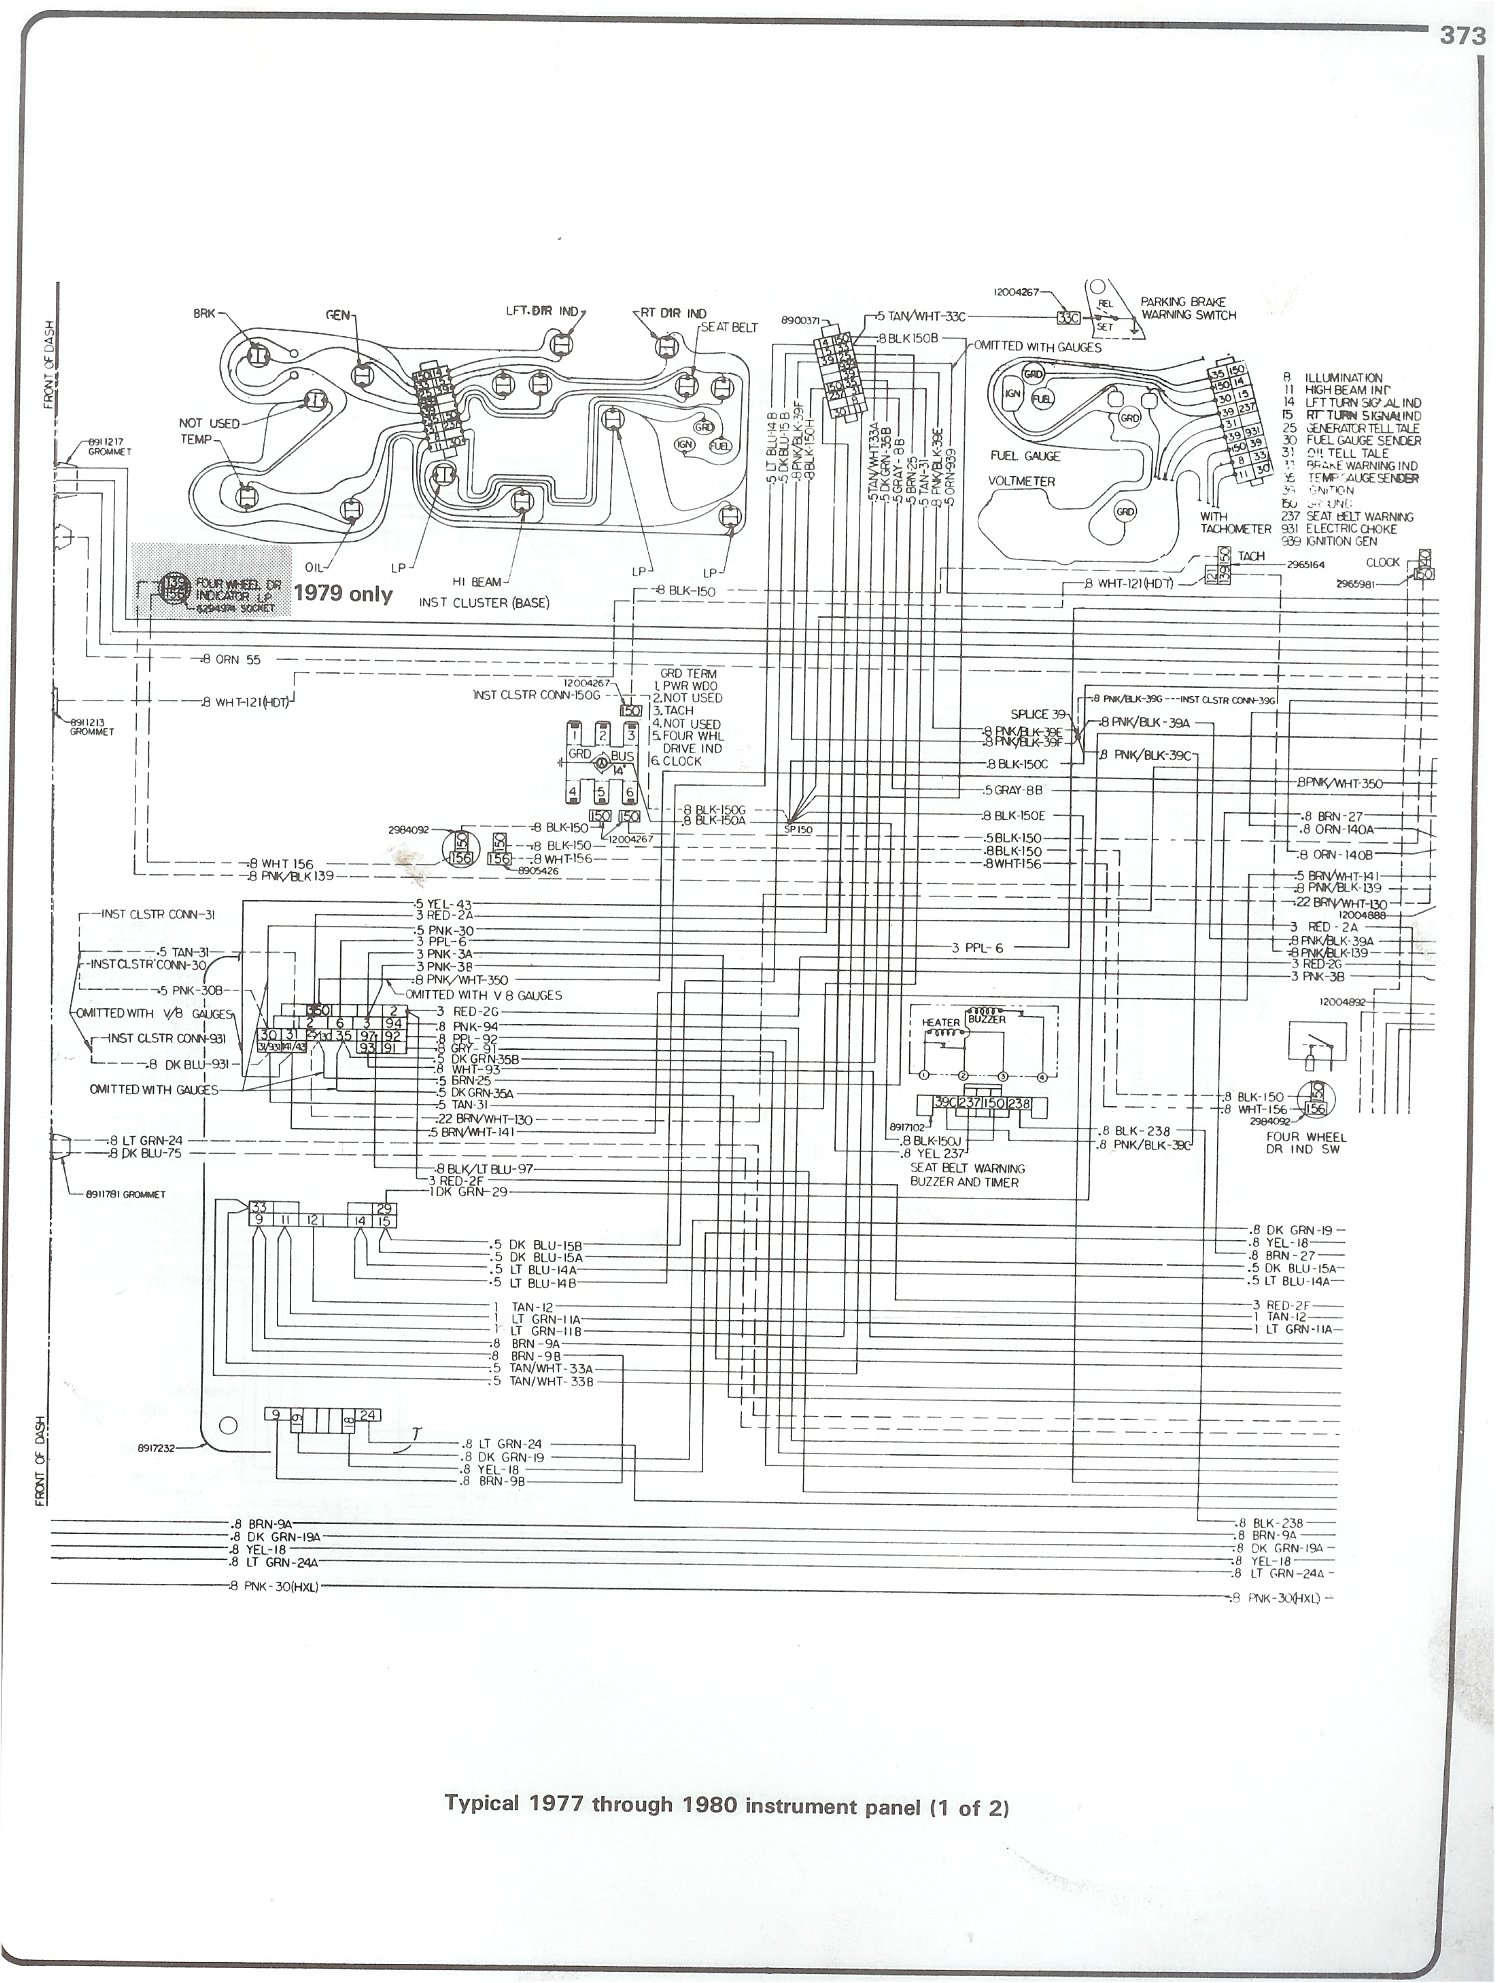 Complete 73 87 Wiring Diagrams 80 El Camino Underhood Diagram 77 Intrument Panel Page 1